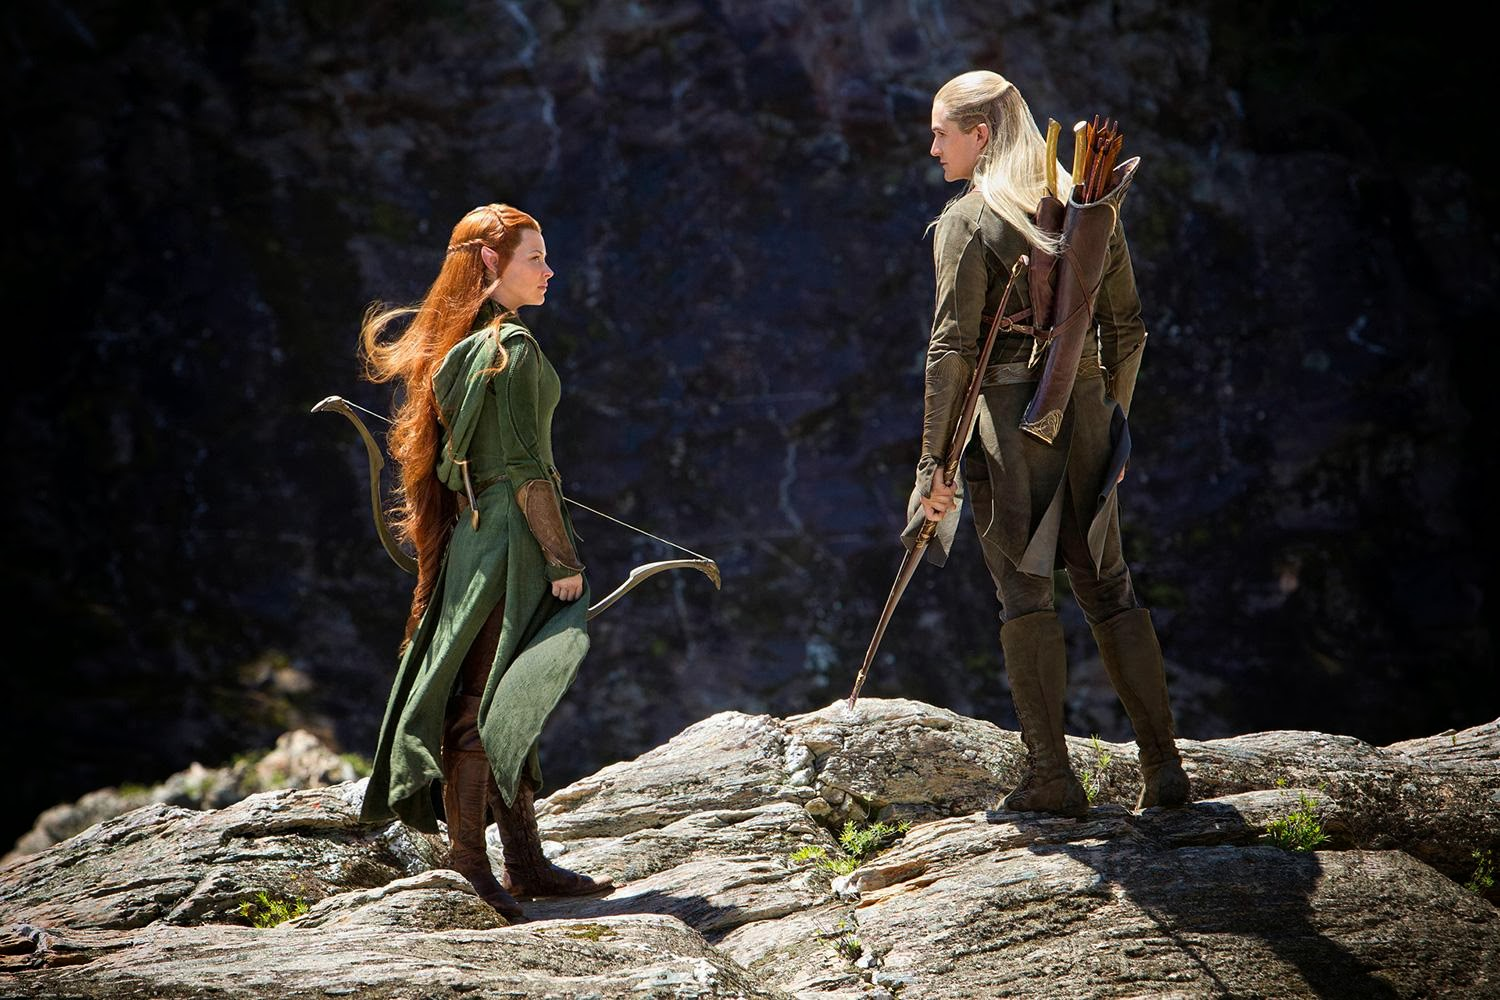 Orlando Bloom as Legolas and Evangeline Lilly as Tauriel in The Hobbit: The Desolation of Smaug